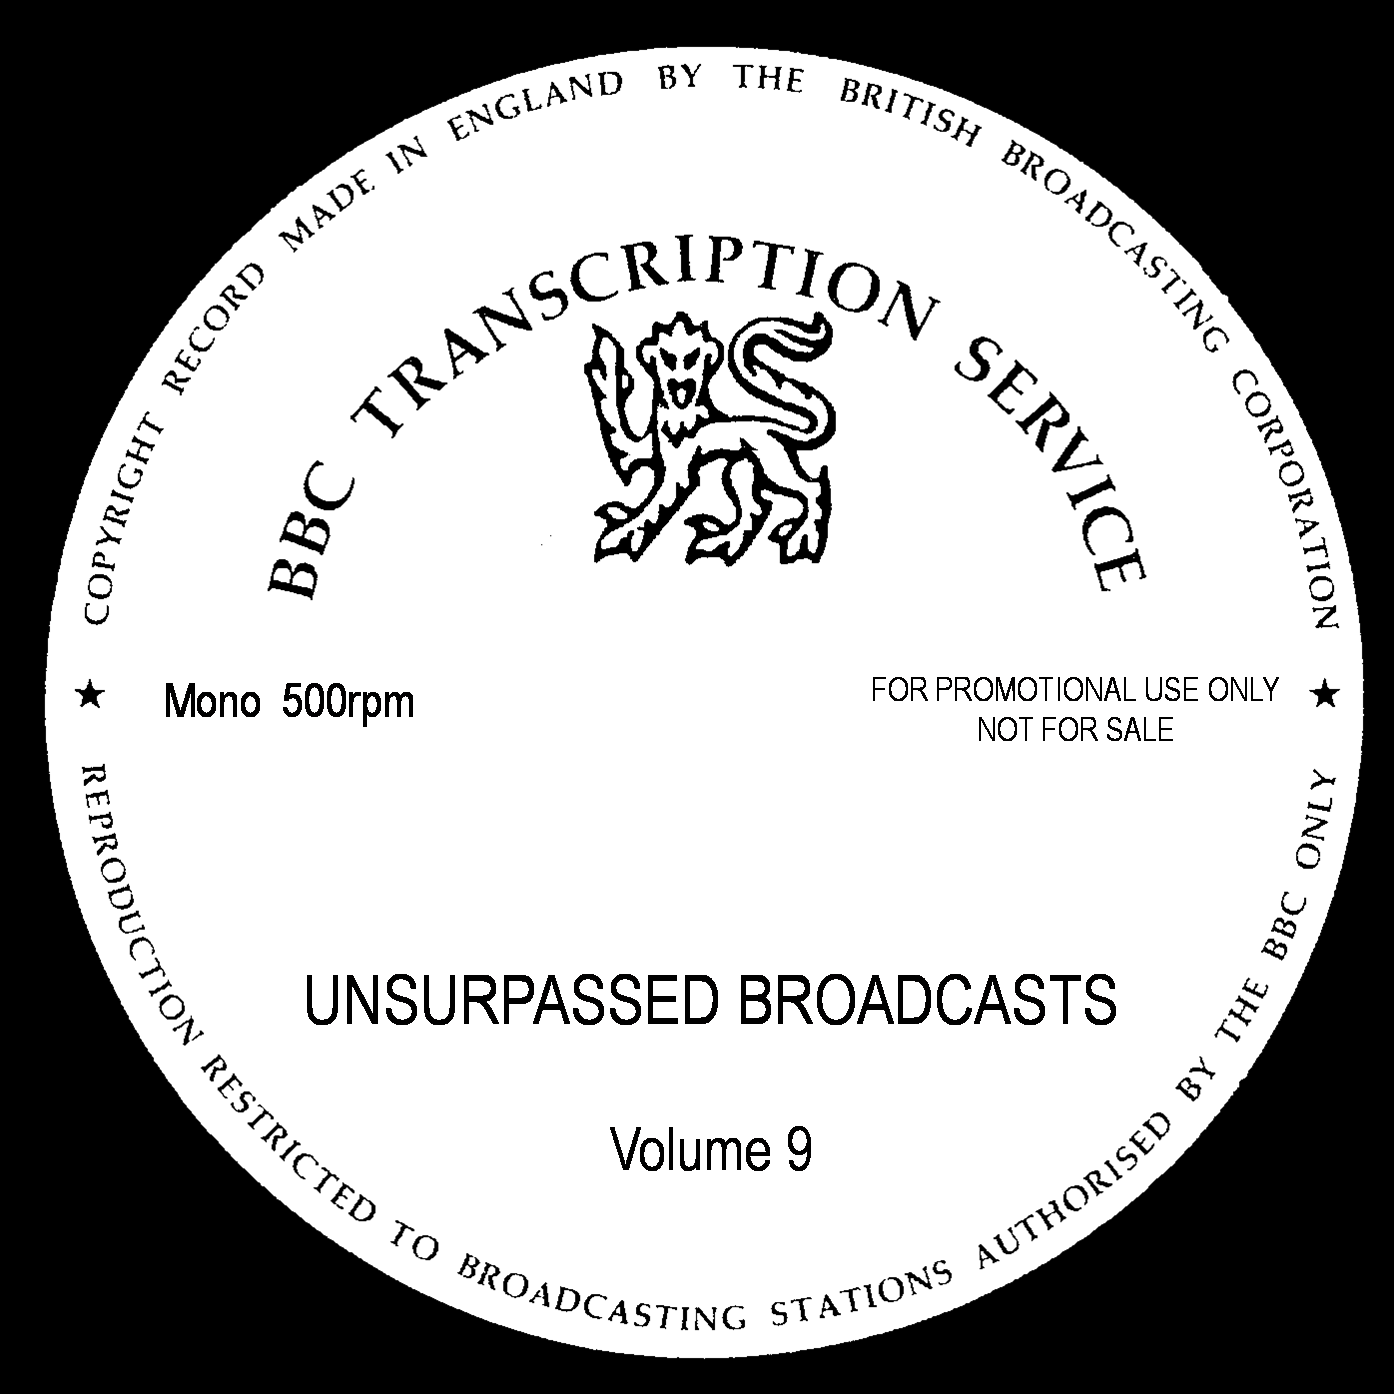 BeatlesUnsurpassedBroadcasts2ndEditionVolume09 (5).png